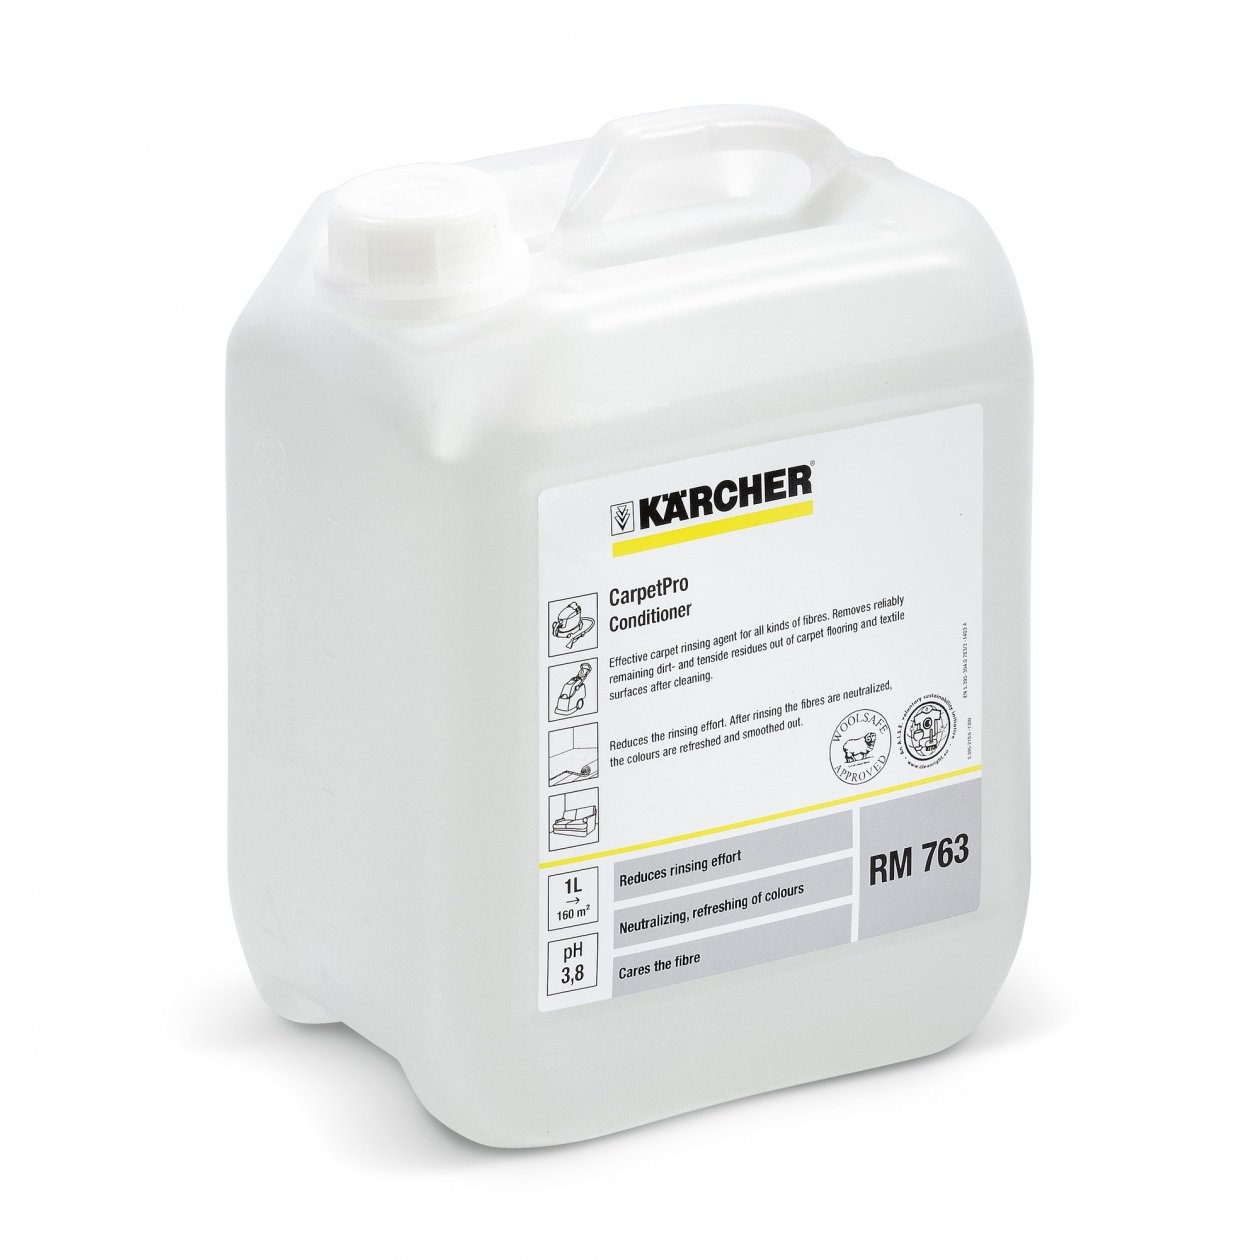 Karcher CarpetPro Conditioner RM 763 62958450, 5 l